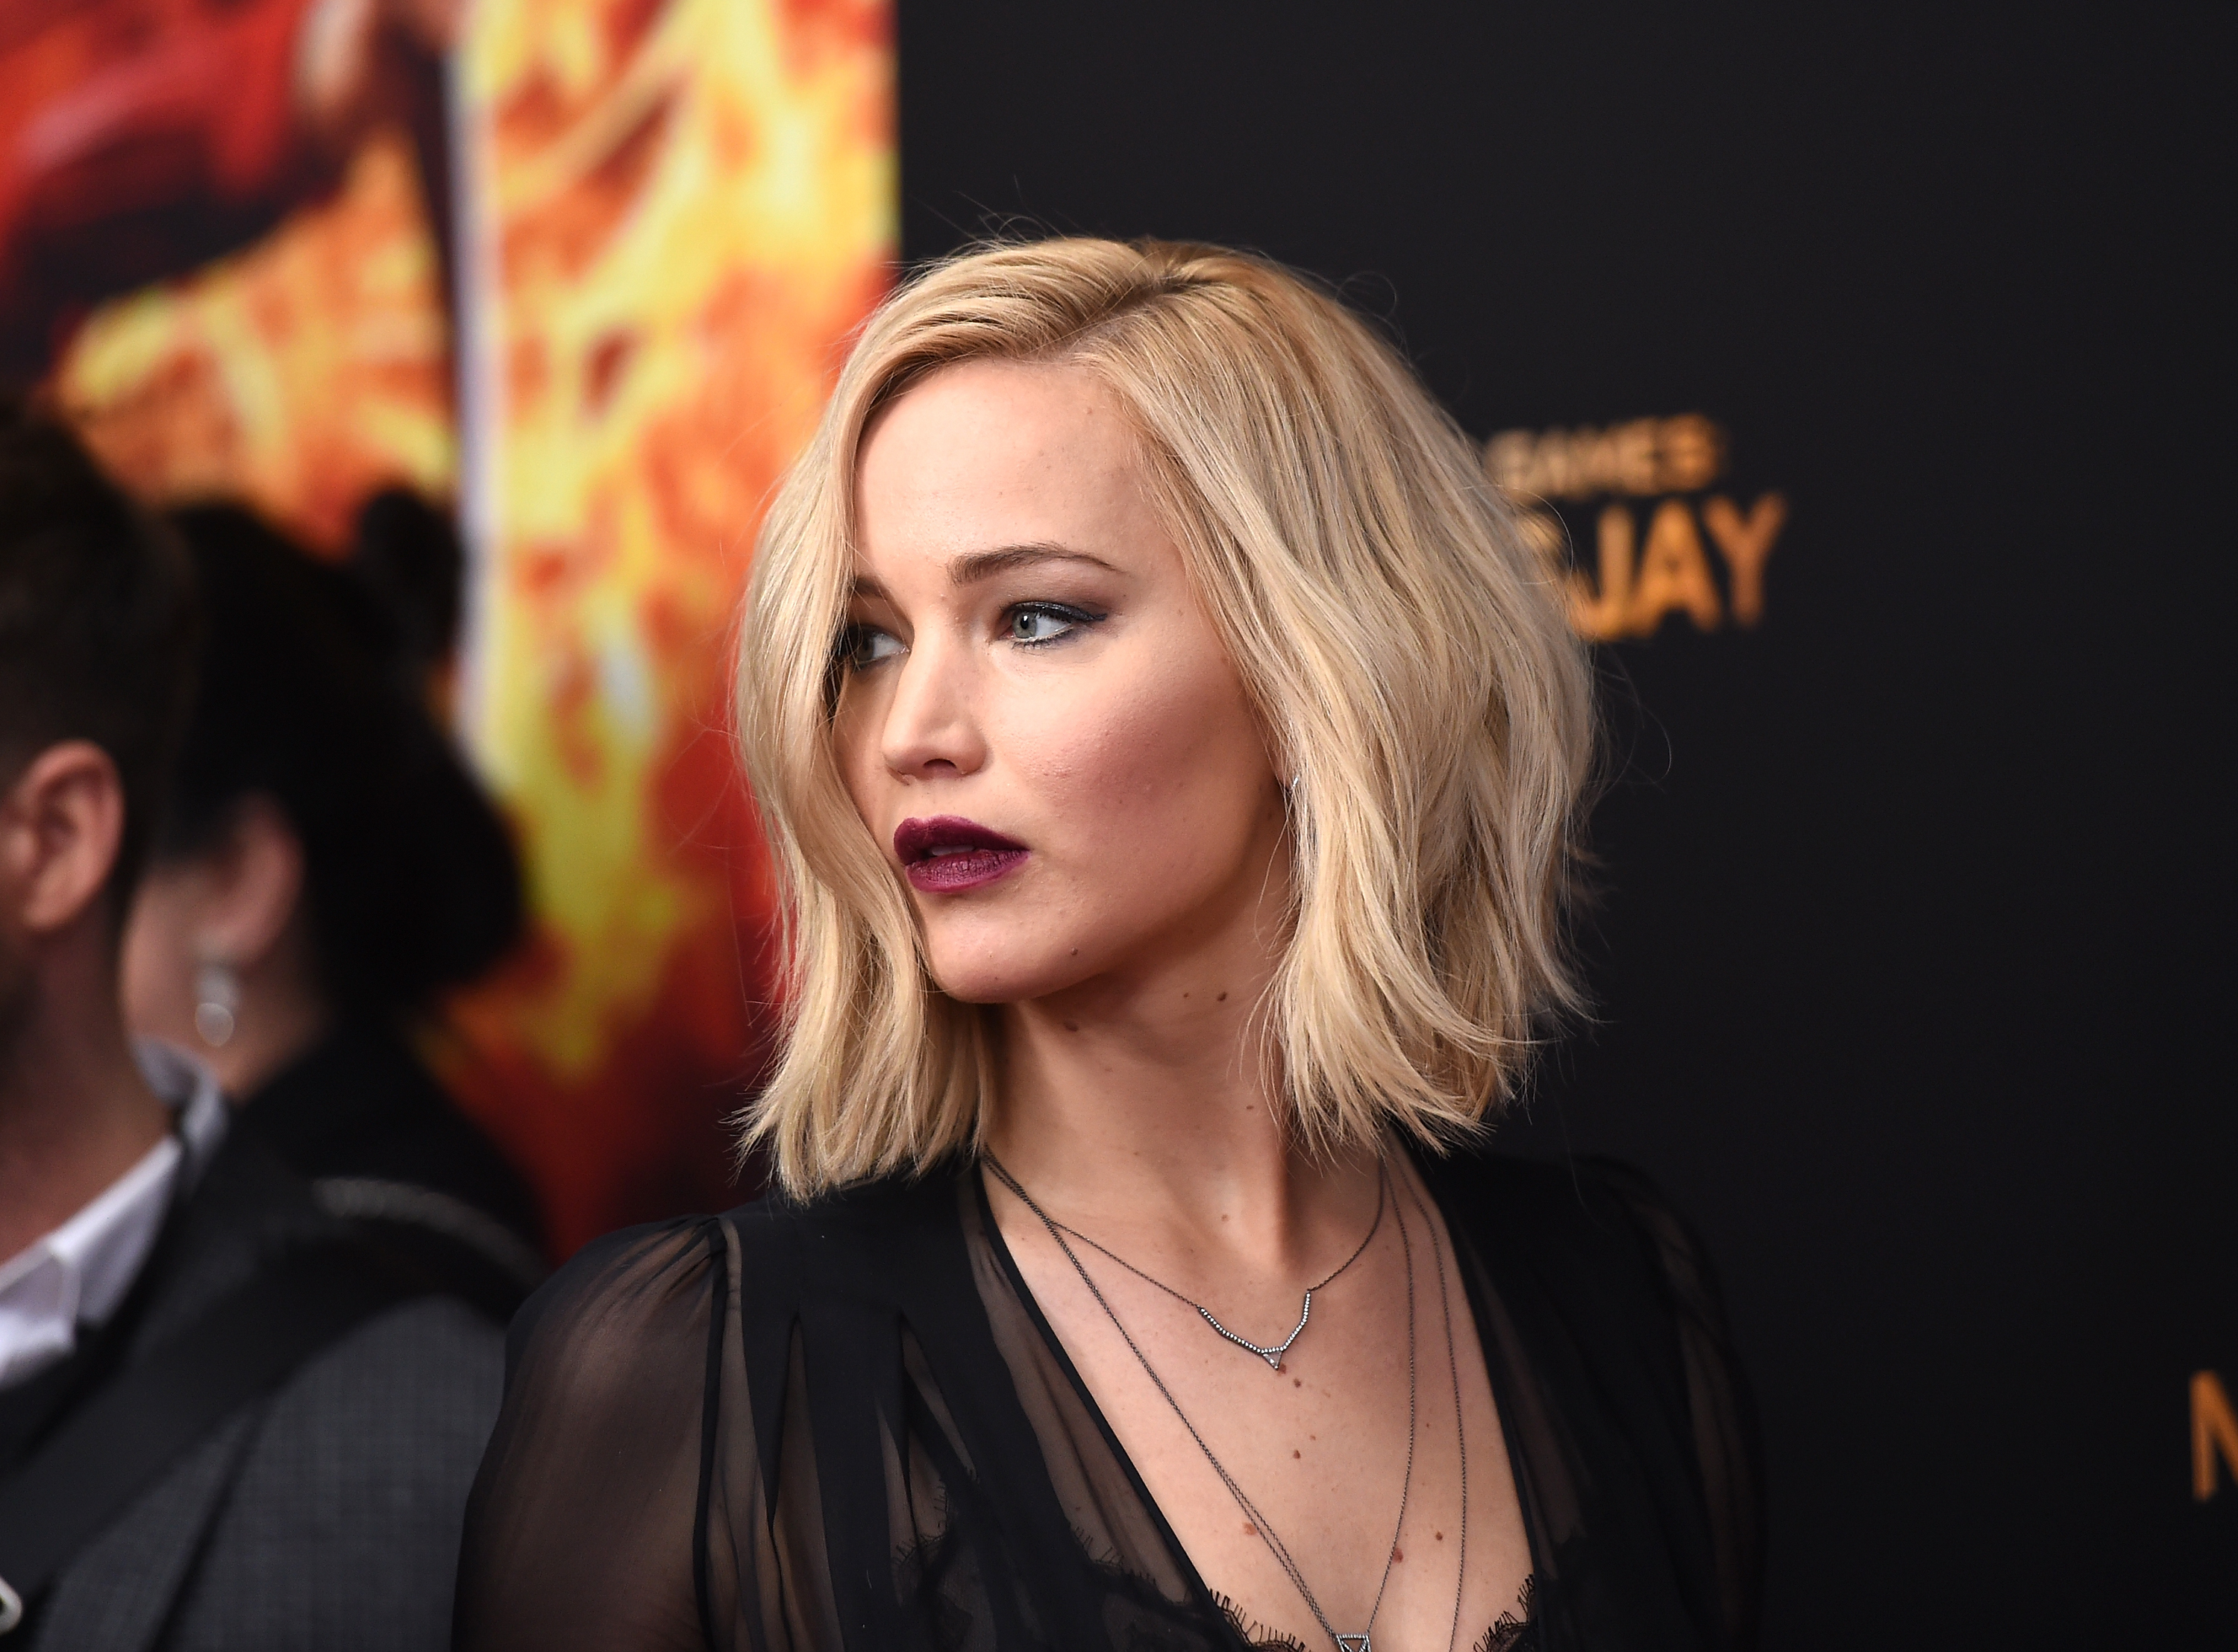 "NEW YORK, NY - NOVEMBER 18: Jennifer Lawrence attends ""The Hunger Games: Mockingjay- Part 2"" New York Premiere at AMC Loews Lincoln Square 13 theater on November 18, 2015 in New York City. (Photo by Jamie McCarthy/Getty Images) *** Local Caption *** Jennifer Lawrence"